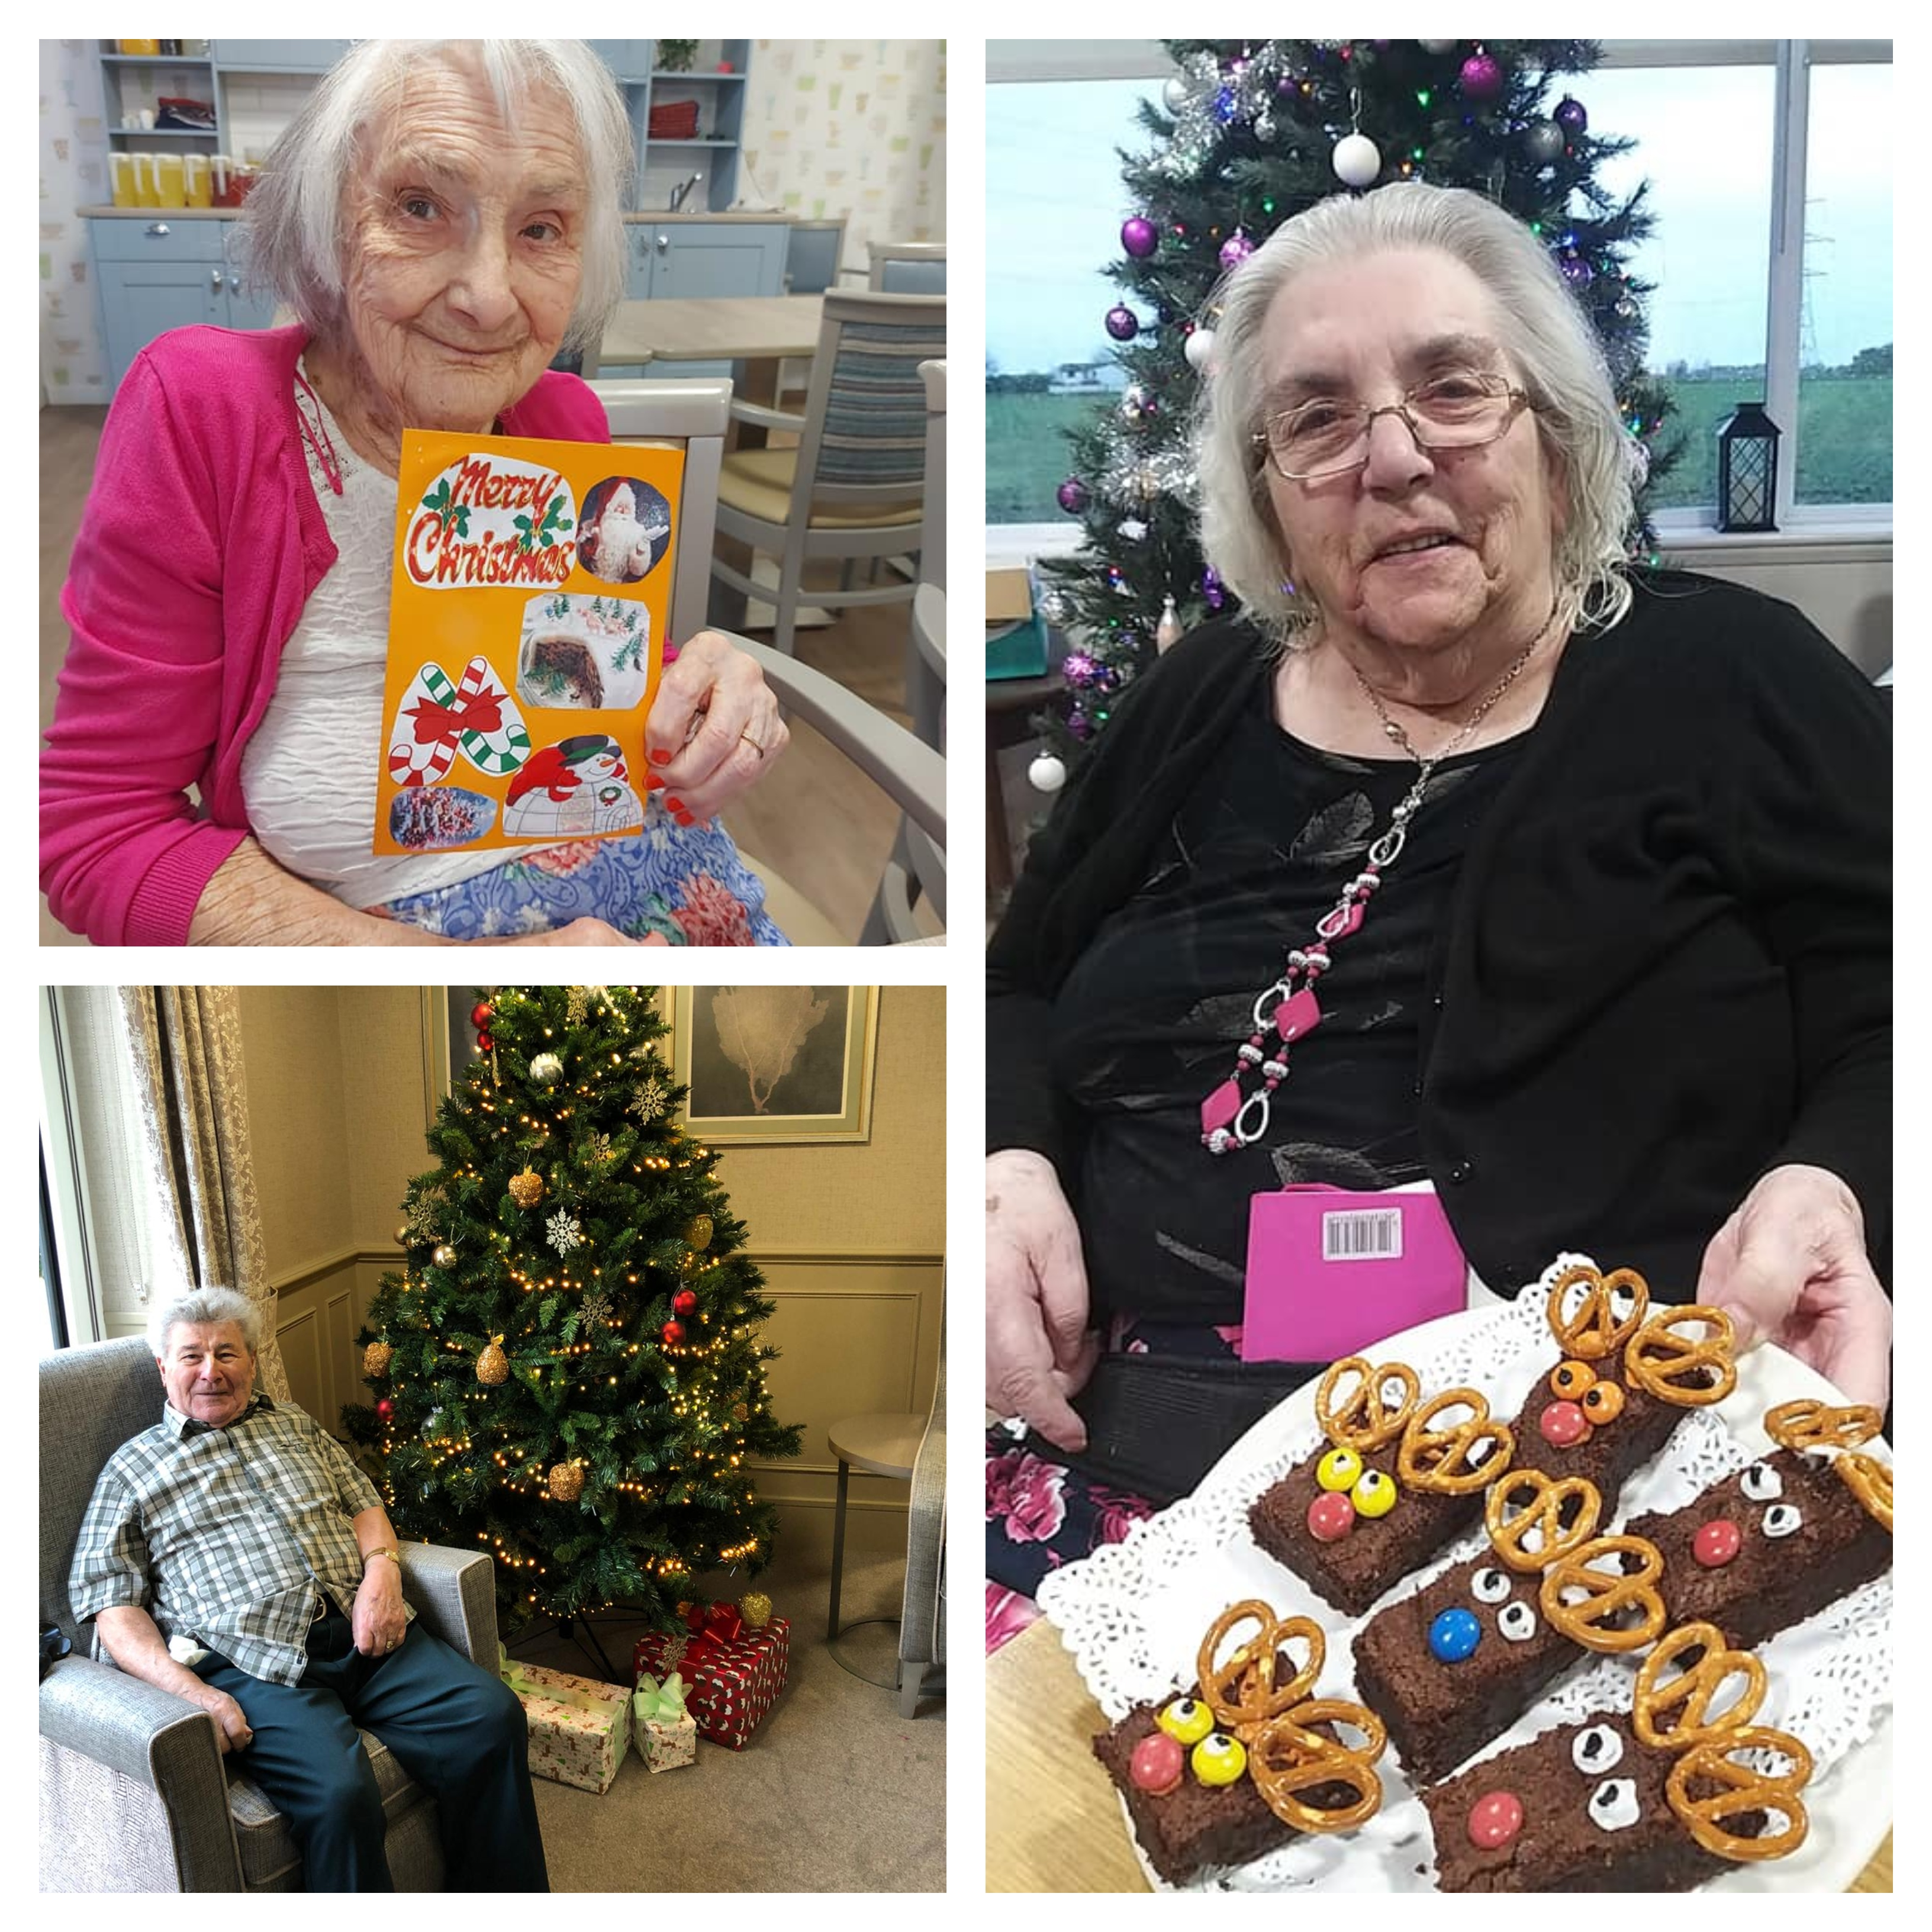 Residents at Country Court Care Homes taking part in various festive crafts and activities